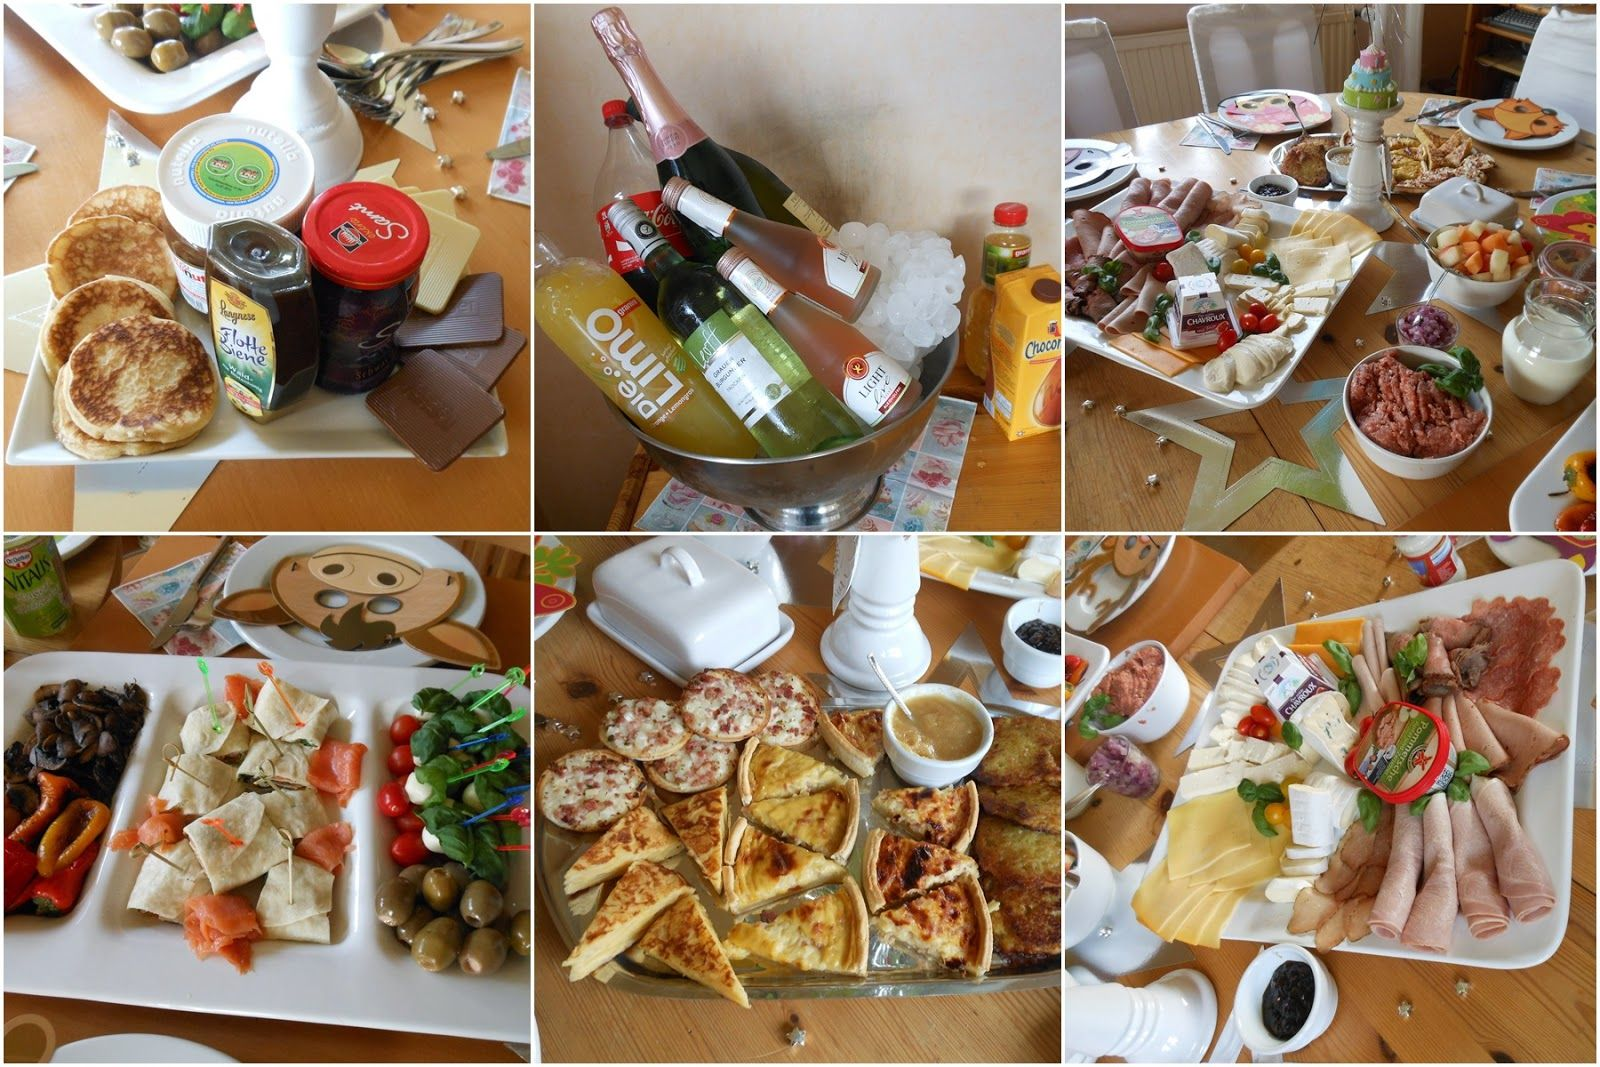 DIY Geburtstagskuchen | Gina's Blog Birthday Brunch